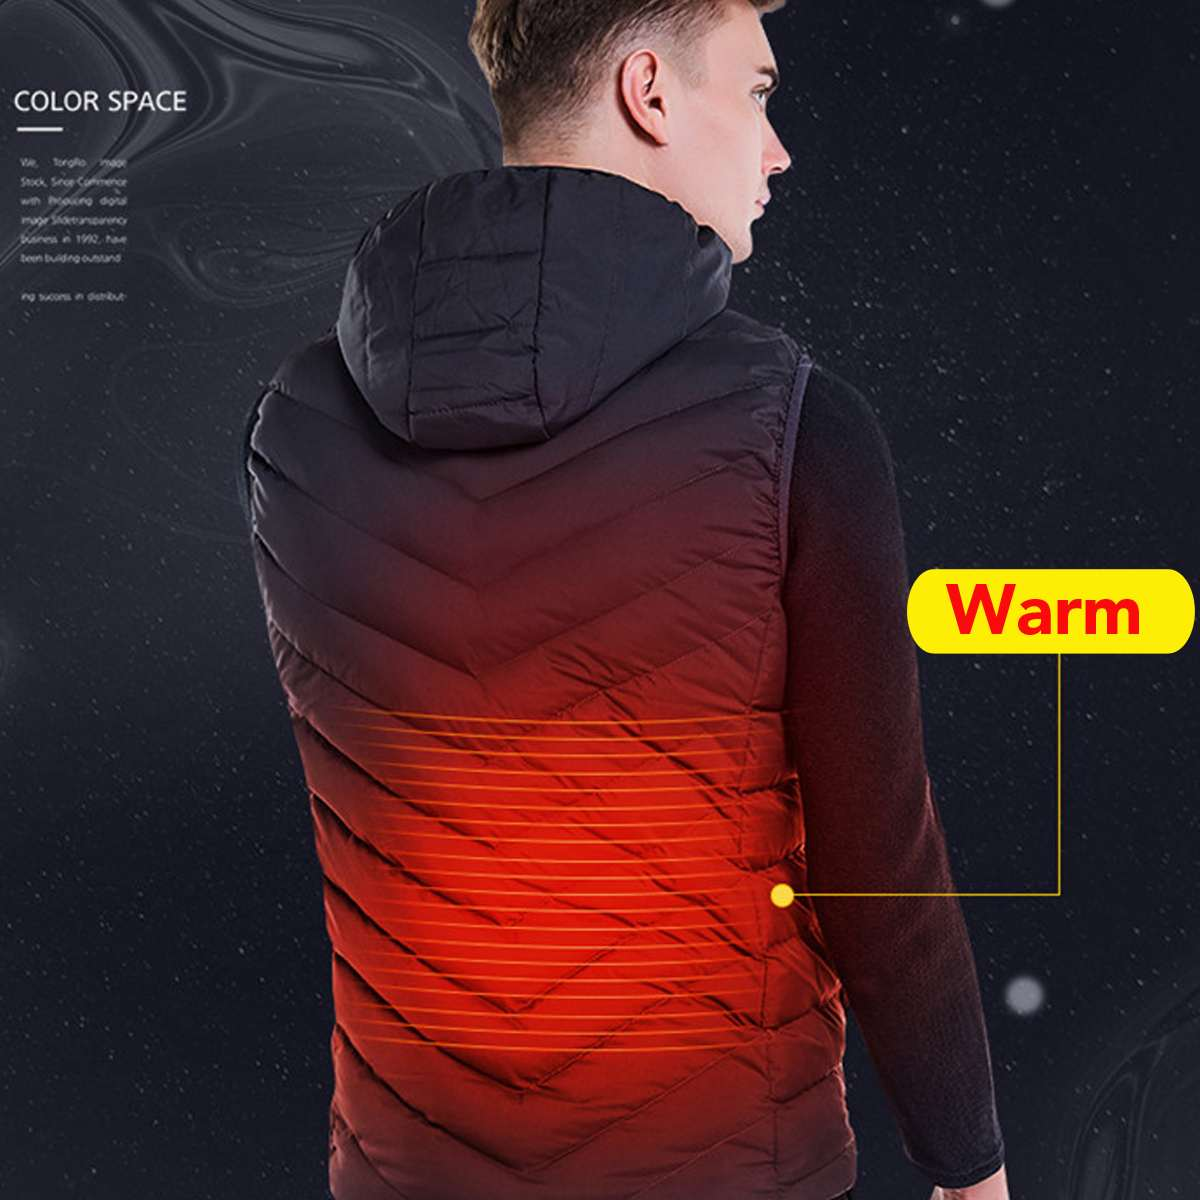 Blue USB Heated Vest Safety Intelligent Thermostatic Heating Vest Keep Warm Outdoors Winter L/XL/XXL/XXXL/4XLBlue USB Heated Vest Safety Intelligent Thermostatic Heating Vest Keep Warm Outdoors Winter L/XL/XXL/XXXL/4XL